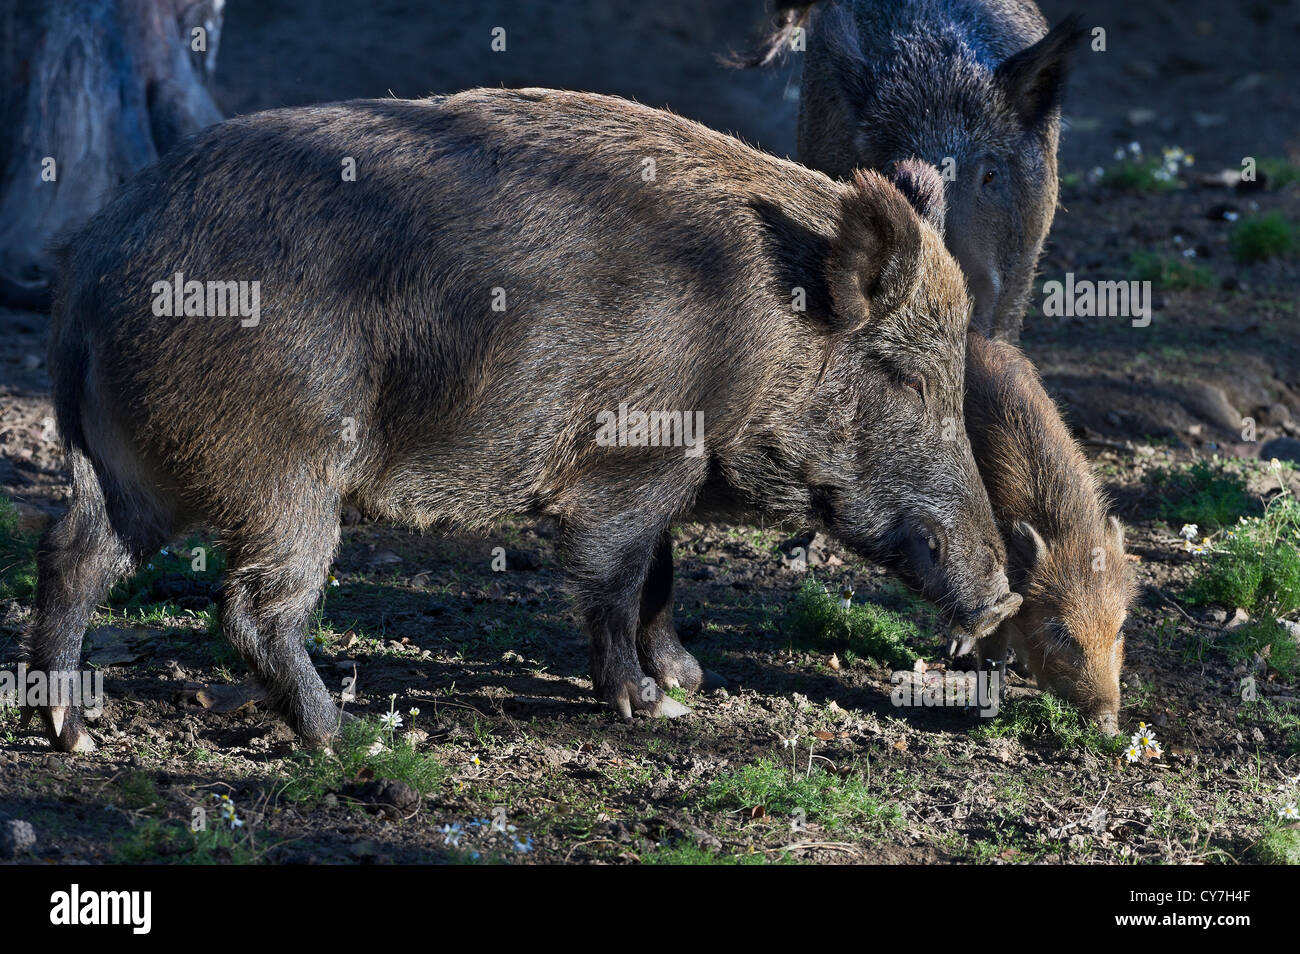 wild boars, Introd, Aosta valley, Italy - Stock Image